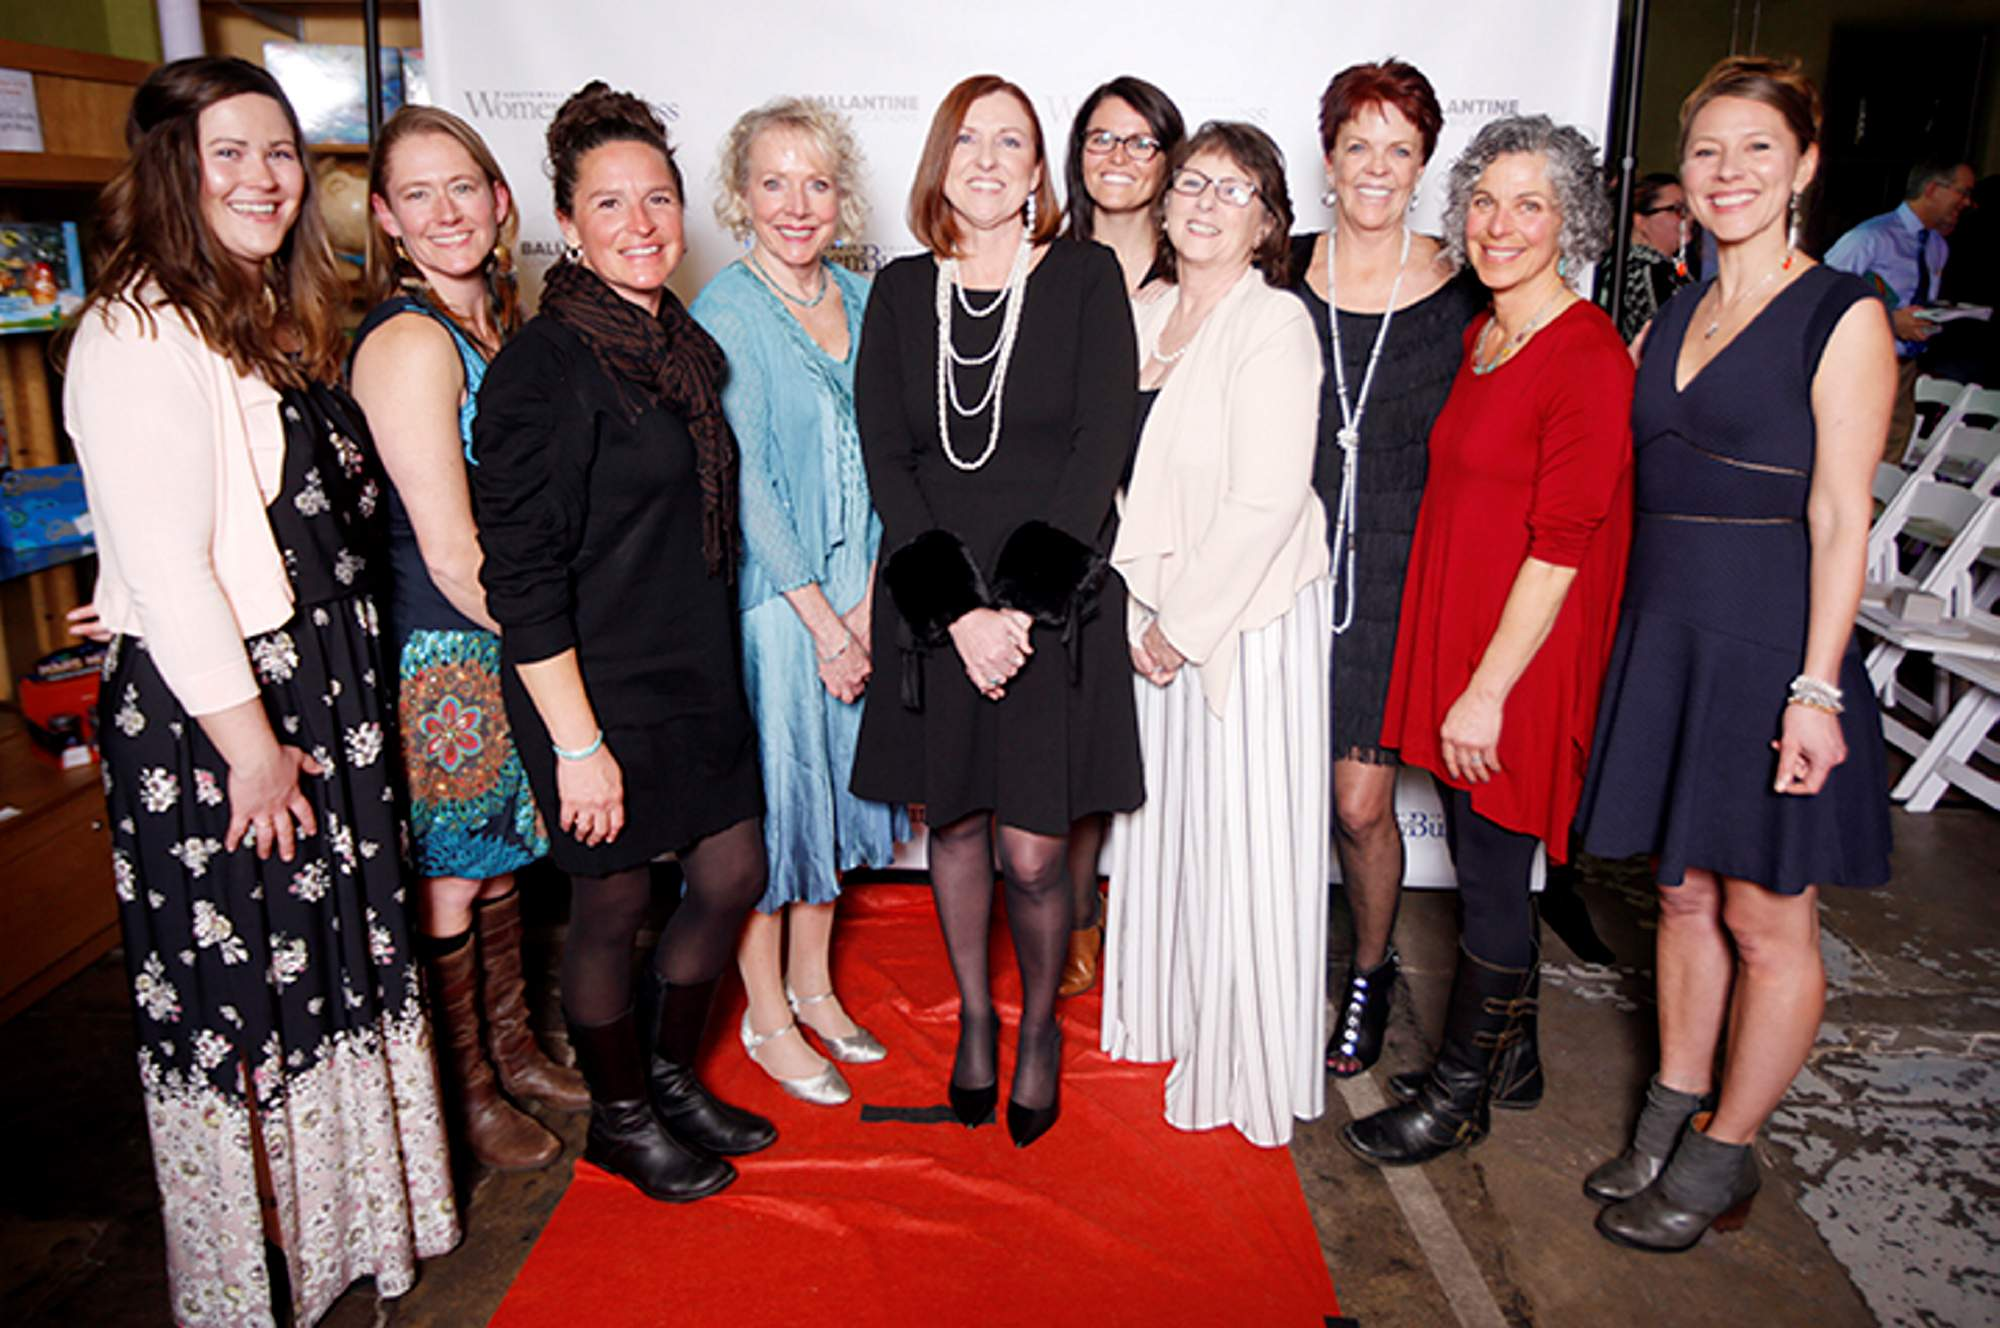 Photos: Women in Business awards